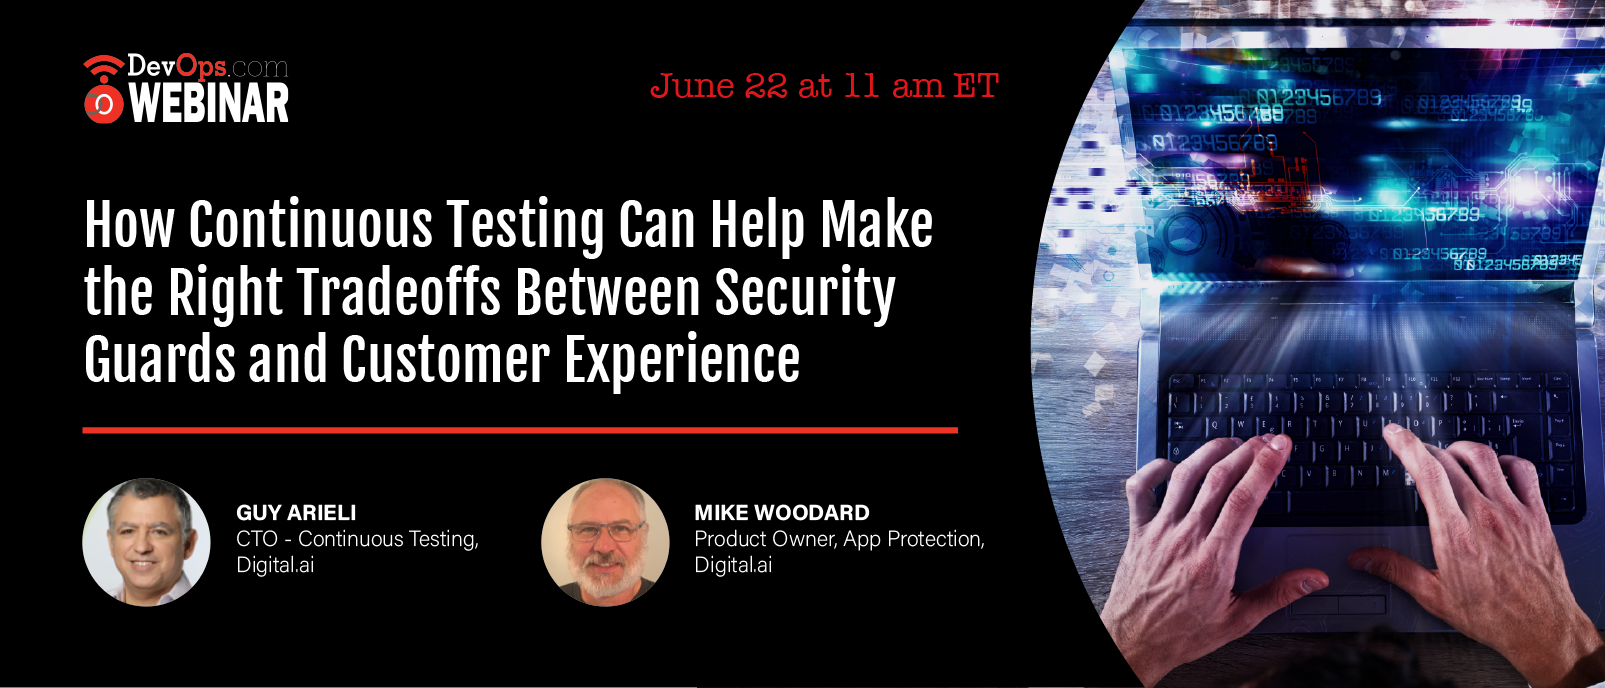 How Continuous Testing Can Help Make the Right Tradeoffs Between Security Guards and Customer Experience